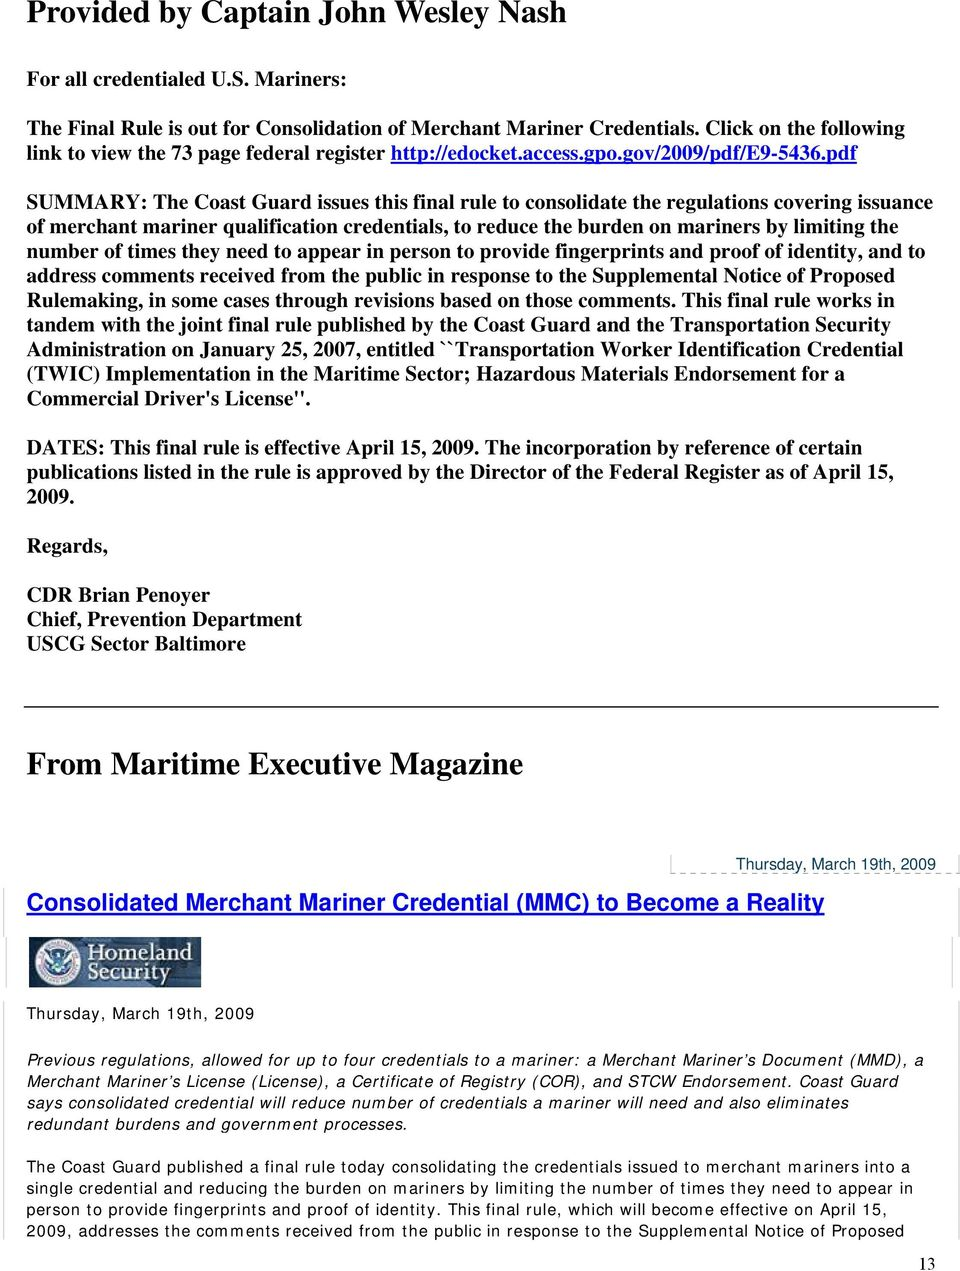 pdf SUMMARY: The Coast Guard issues this final rule to consolidate the regulations covering issuance of merchant mariner qualification credentials, to reduce the burden on mariners by limiting the